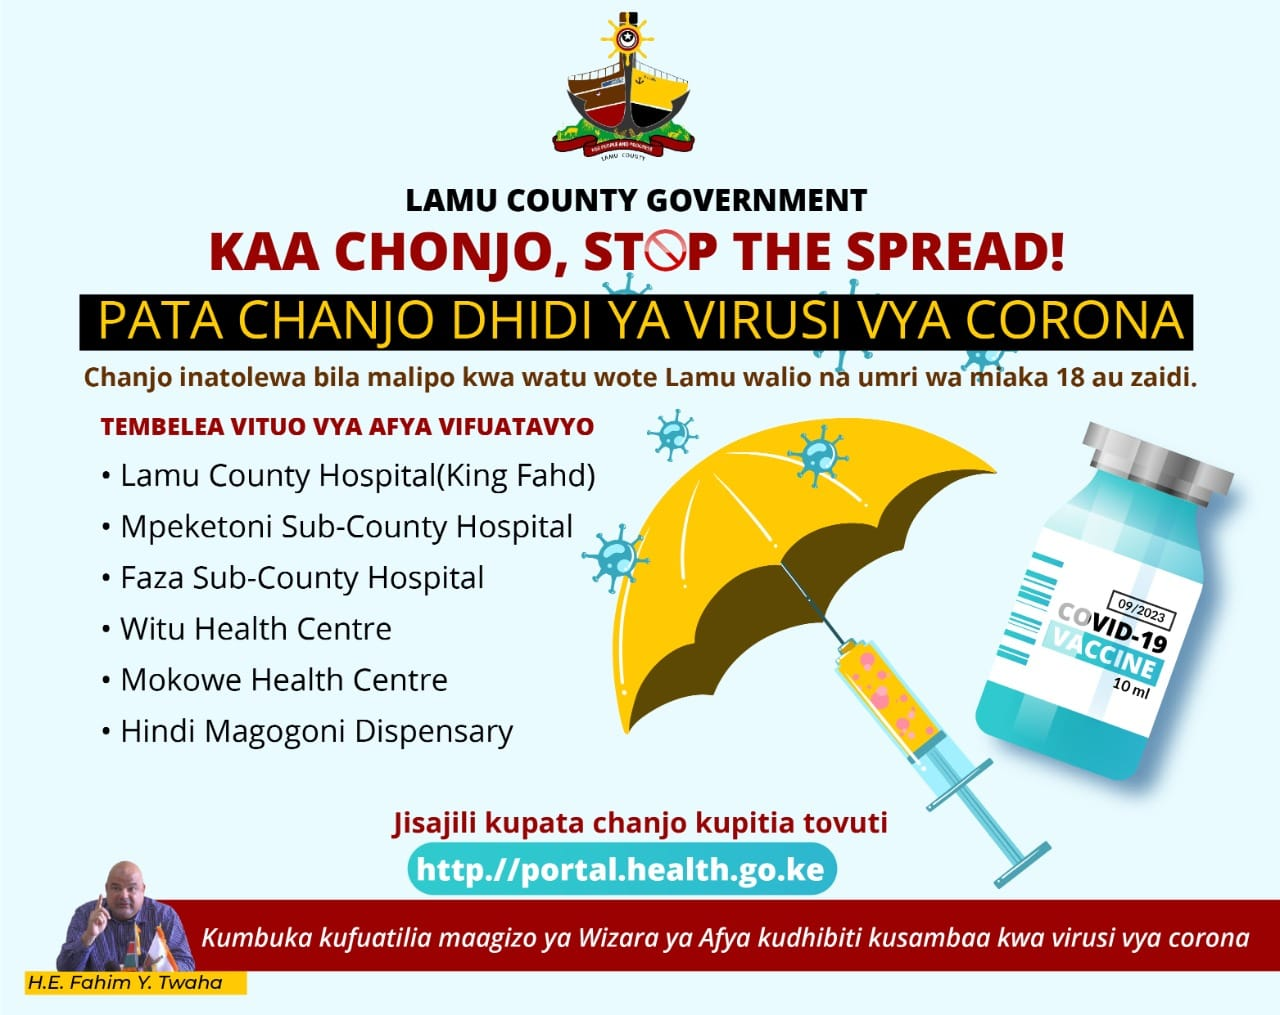 LAMU COUNTY RESIDENTS URGED TO GO FOR COVID-19 JAB